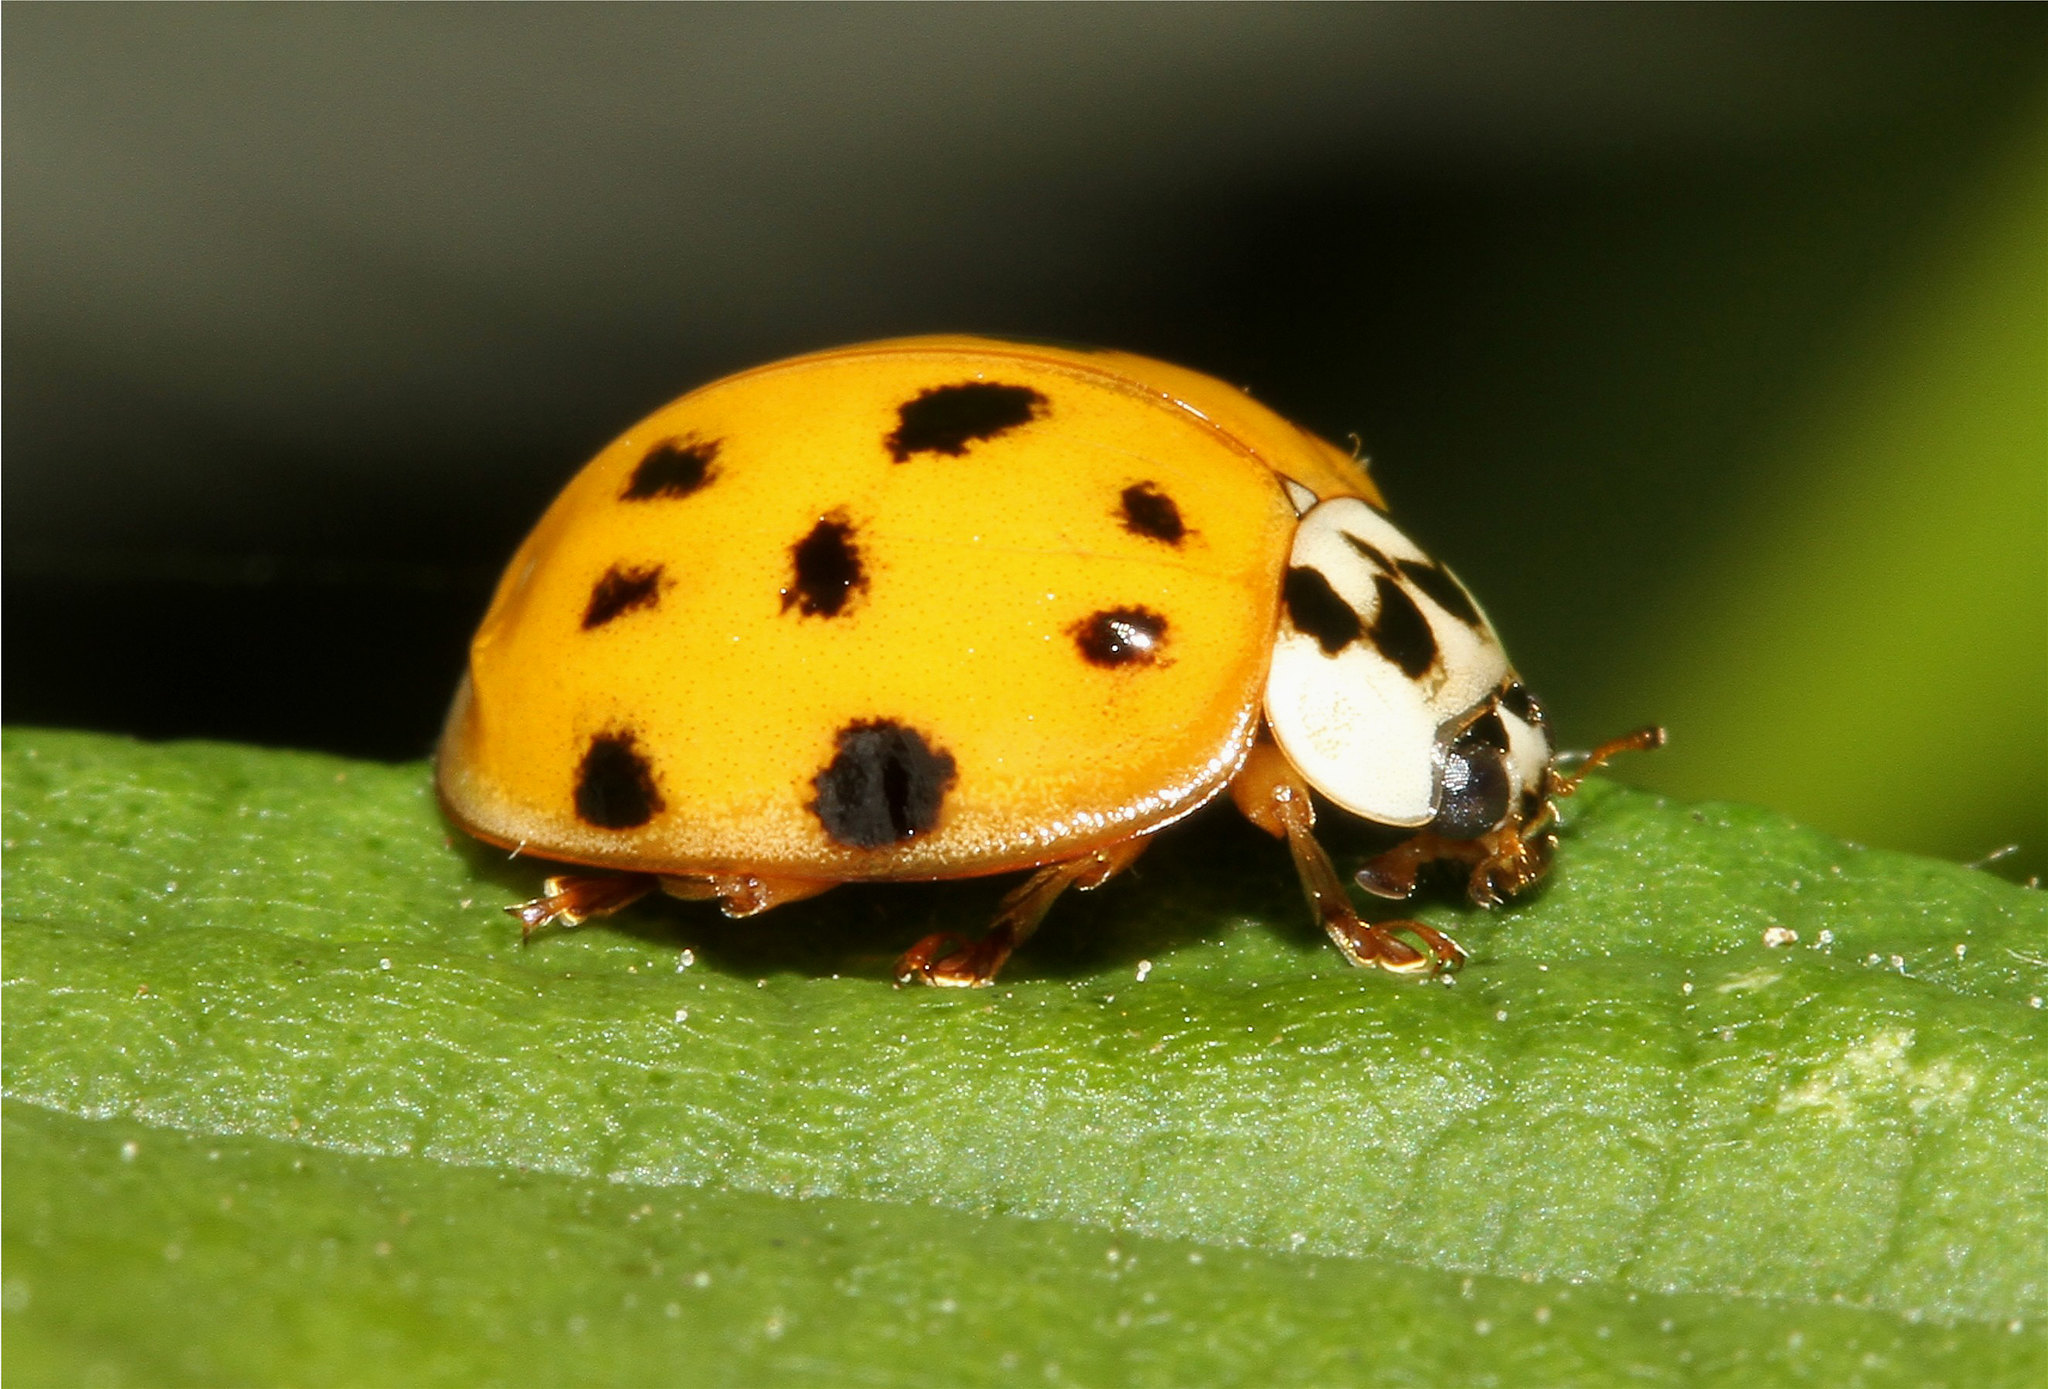 Harmonia axyridis (Multi Coloured Asian Lady Beetle)